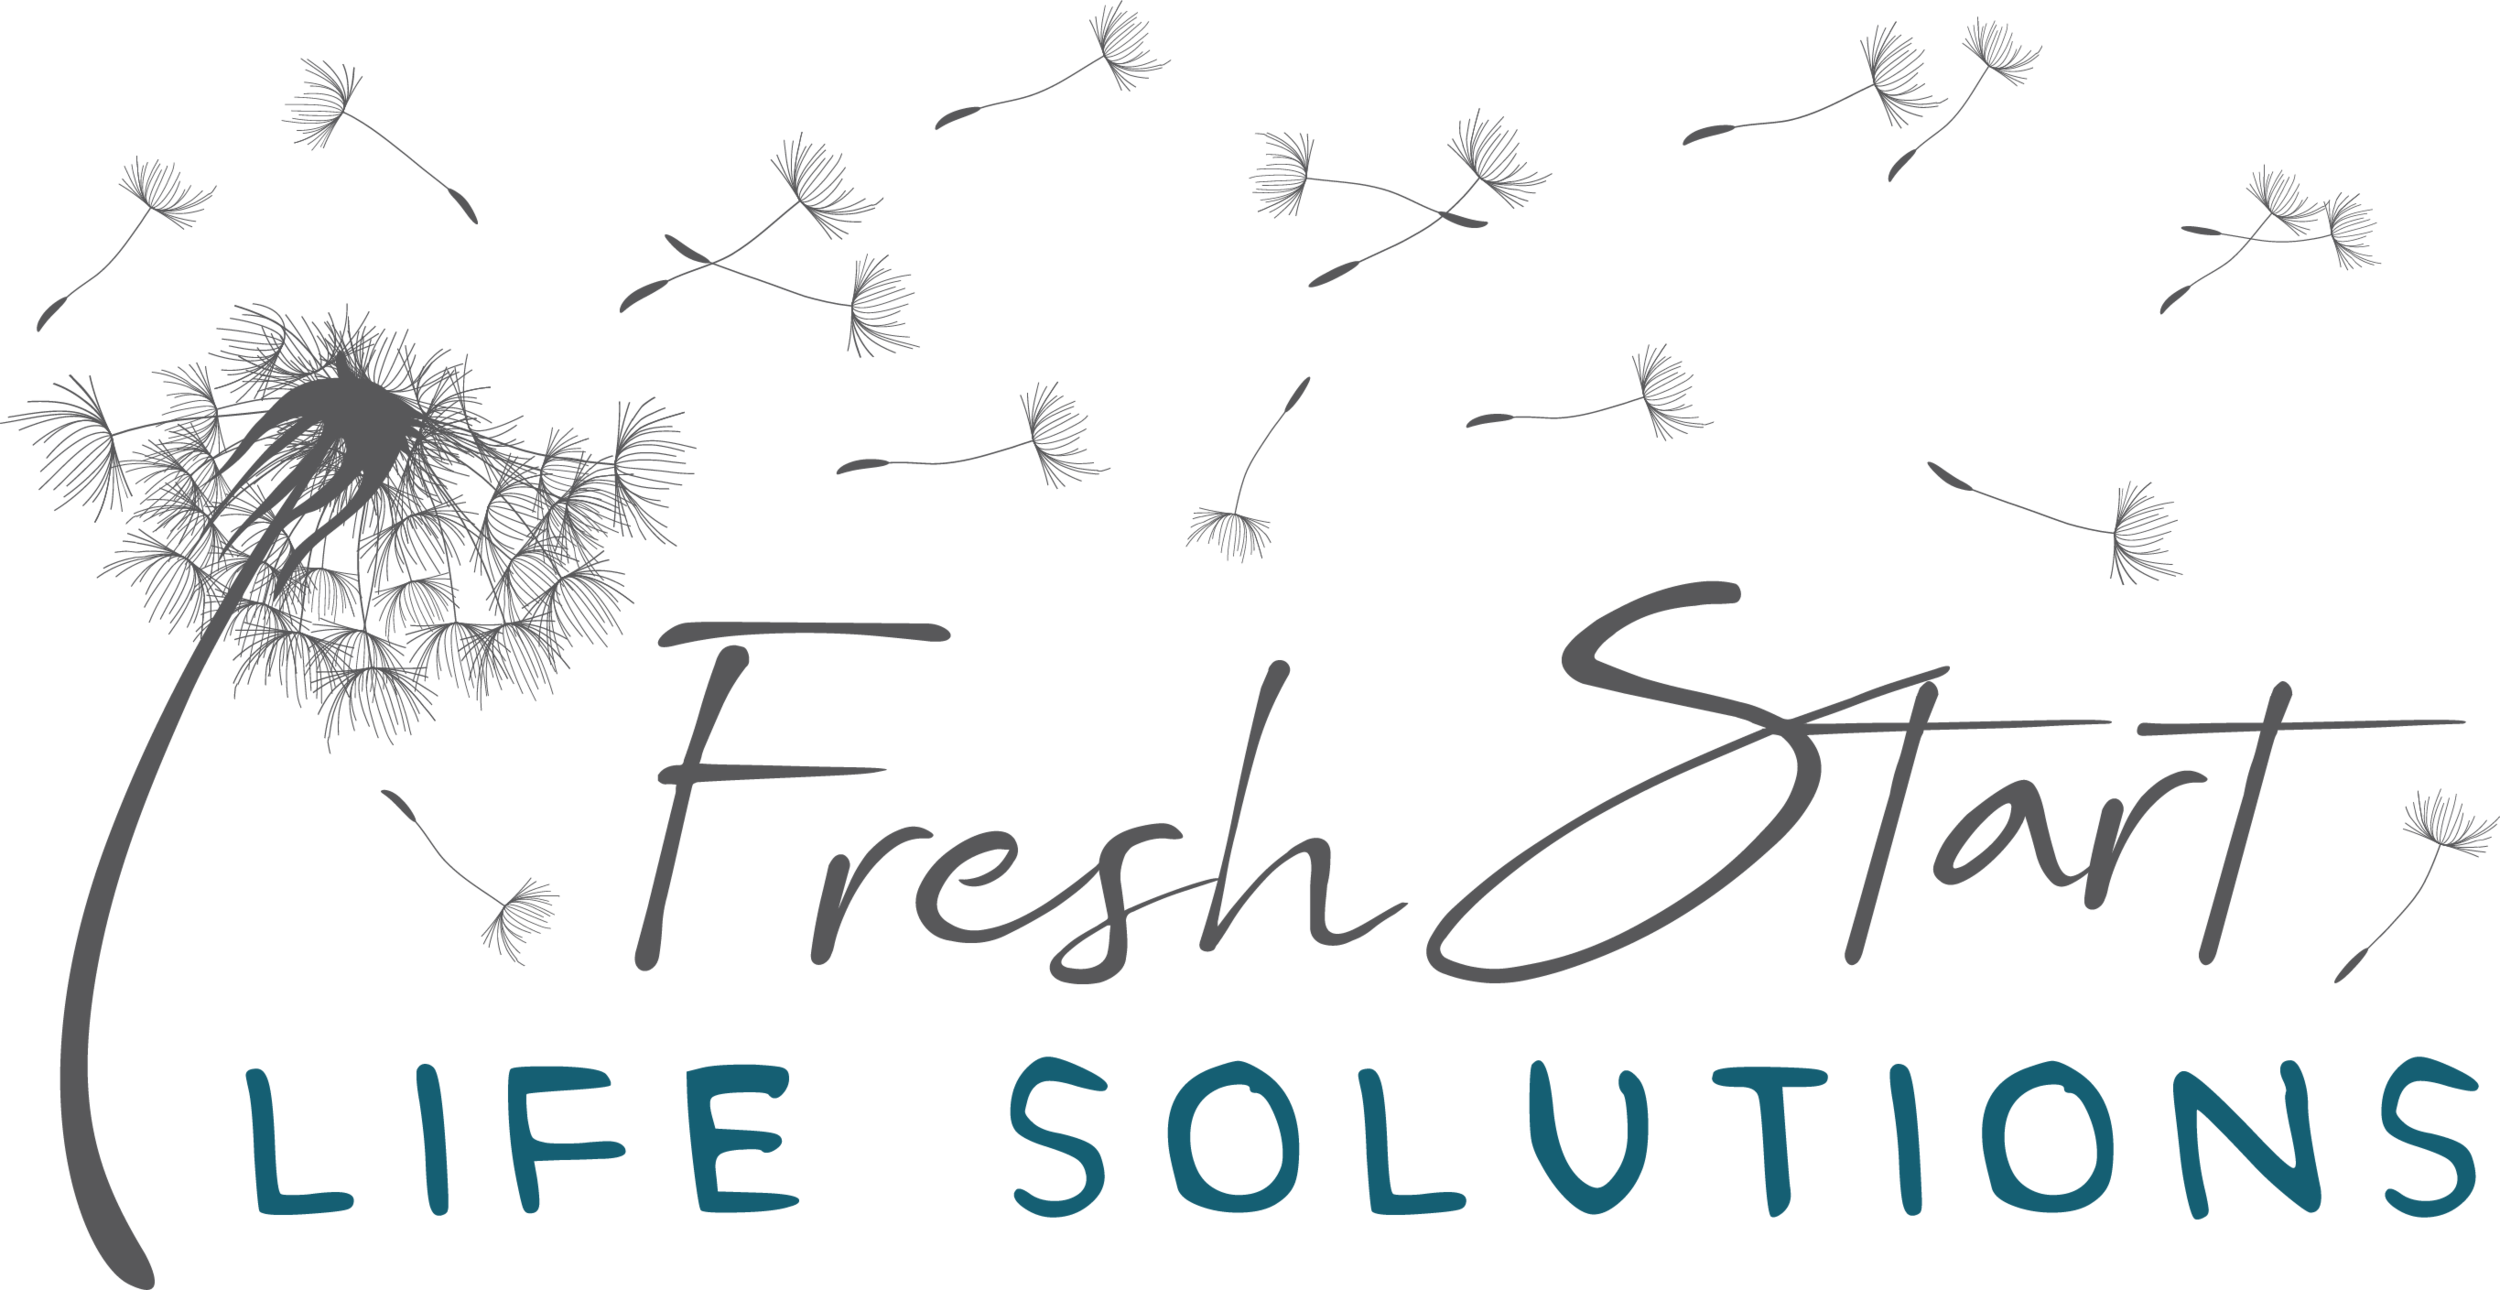 Fresh Start Life Solutions - Fresh Start Life Solutions, is an integrative Marriage and Family Therapy practice based out of Davie, Florida. Our therapists see clients regularly throughout Broward County, as well as areas of Palm Beach County and Dade County. We each have experience working with individuals, couples, families, and groups. Some of our areas of focus include: behavior/social skills acquisition (and the treatment of associated disorders); anxiety; depression; parenting; infidelity; divorce; blended families; high conflict families; ASD; ADHD; ODD; women's health issues; and self-esteem. Upon meeting you, we will create a personalized treatment plan that will be best suited to you reaching your determined goals. In addition to in-office sessions, we offer the options of traveling to clients' homes, as well as conducting co-therapy with more than one therapist in the room. Click here to learn more.